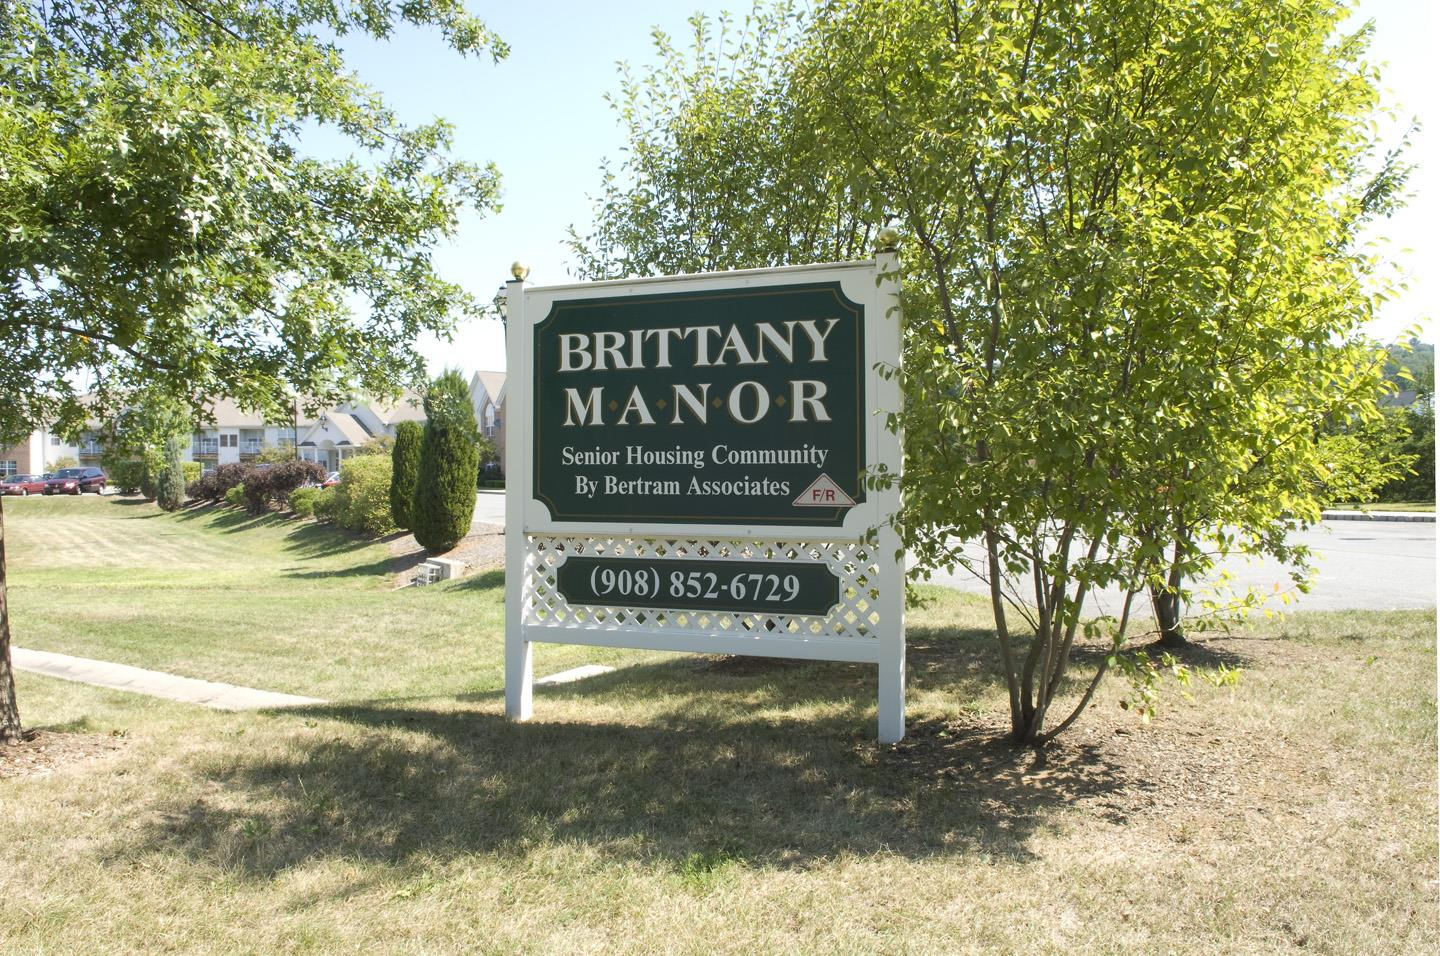 Images of Brittany Manor, LLC